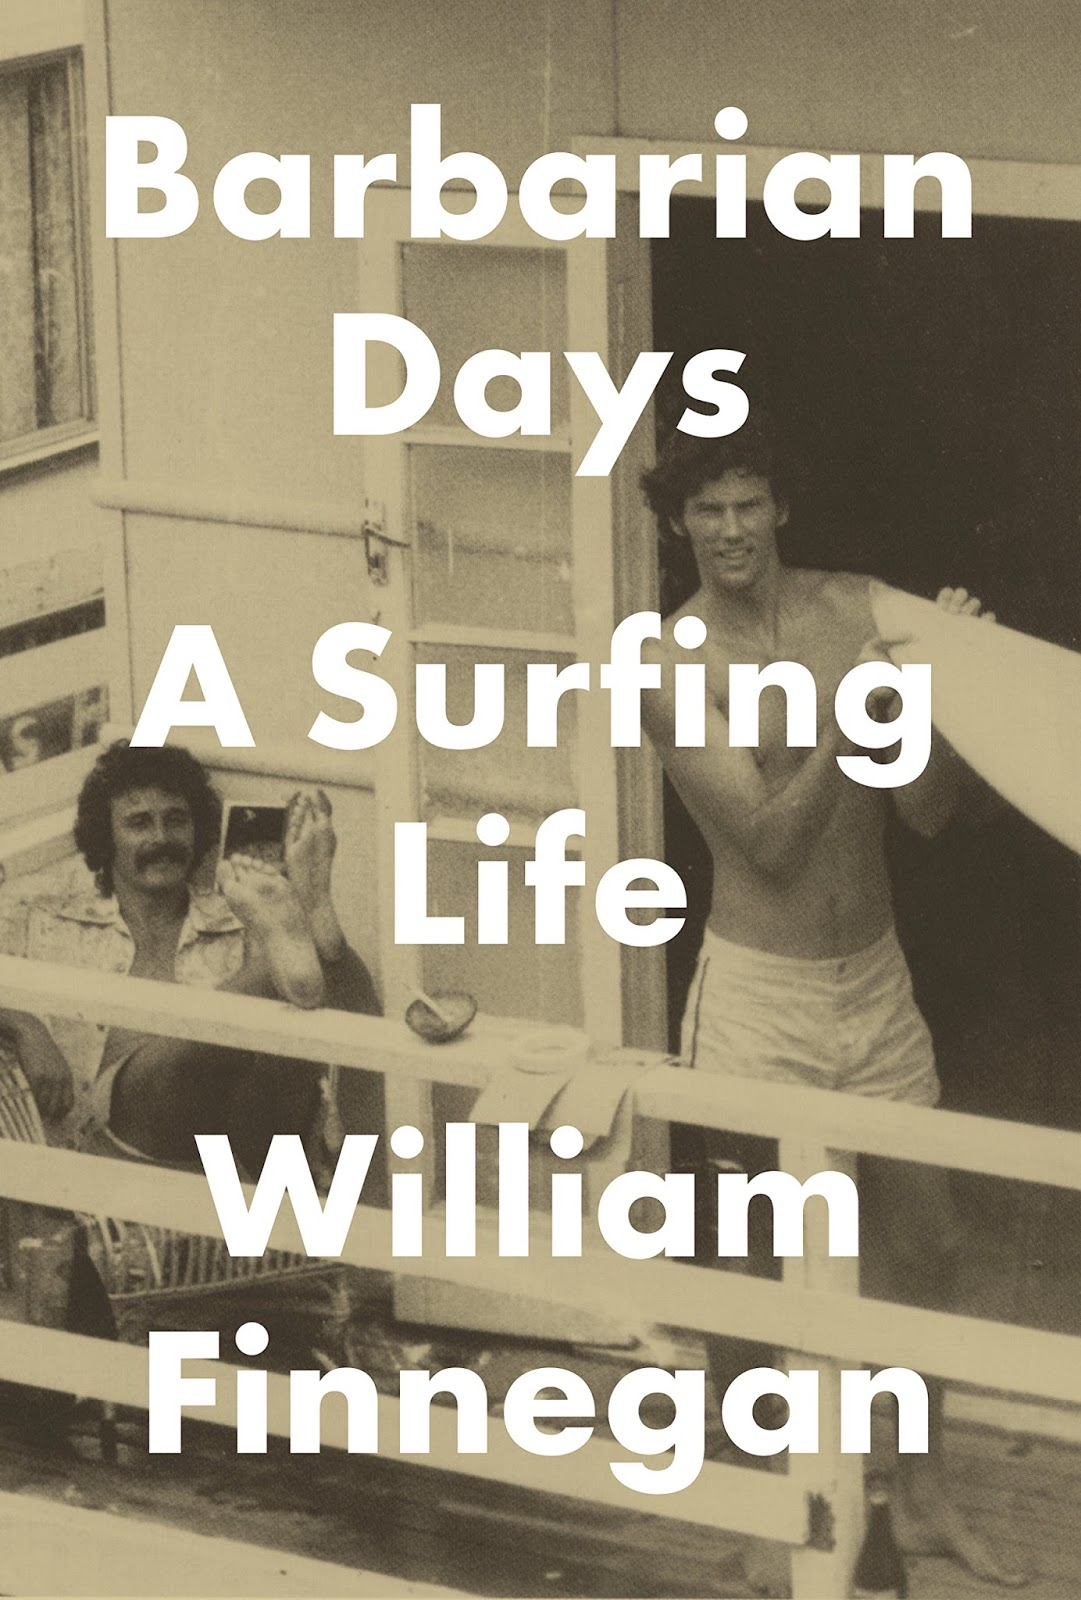 barbarian days a surfing life william finnegan 01